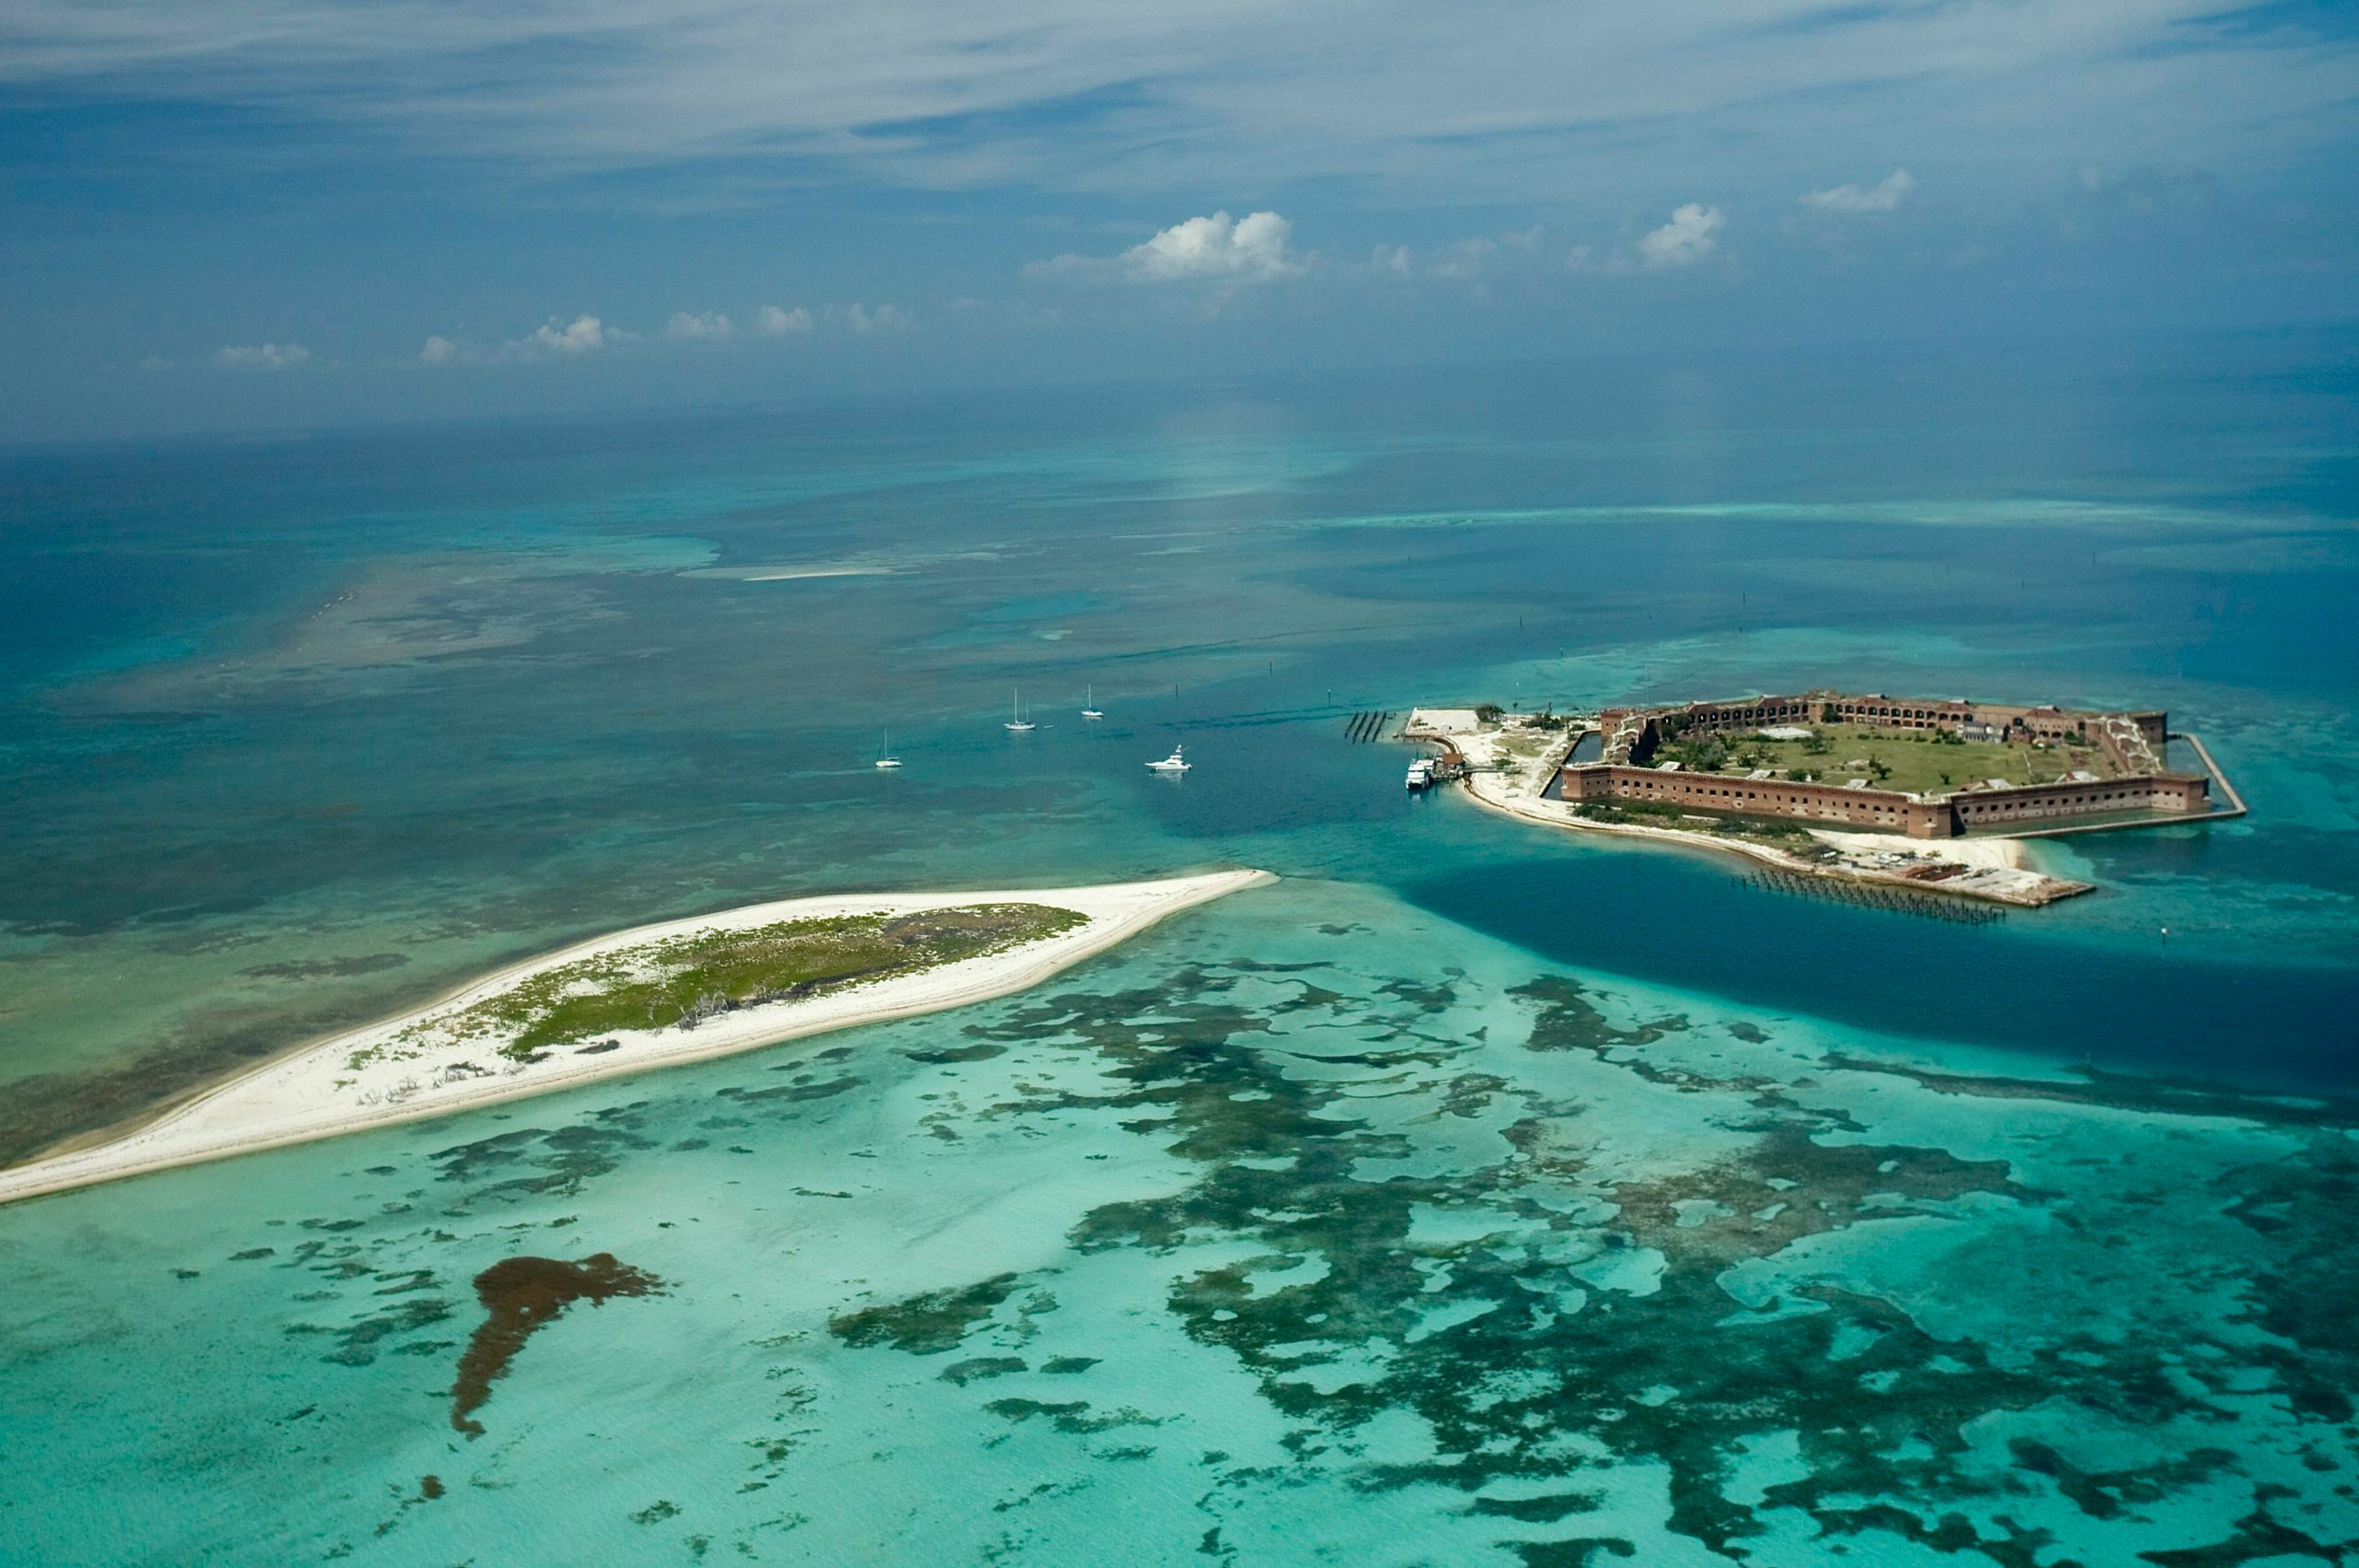 Aerial view of Dry Tortugas National Park, Fort Jefferson, Dry Tortugas